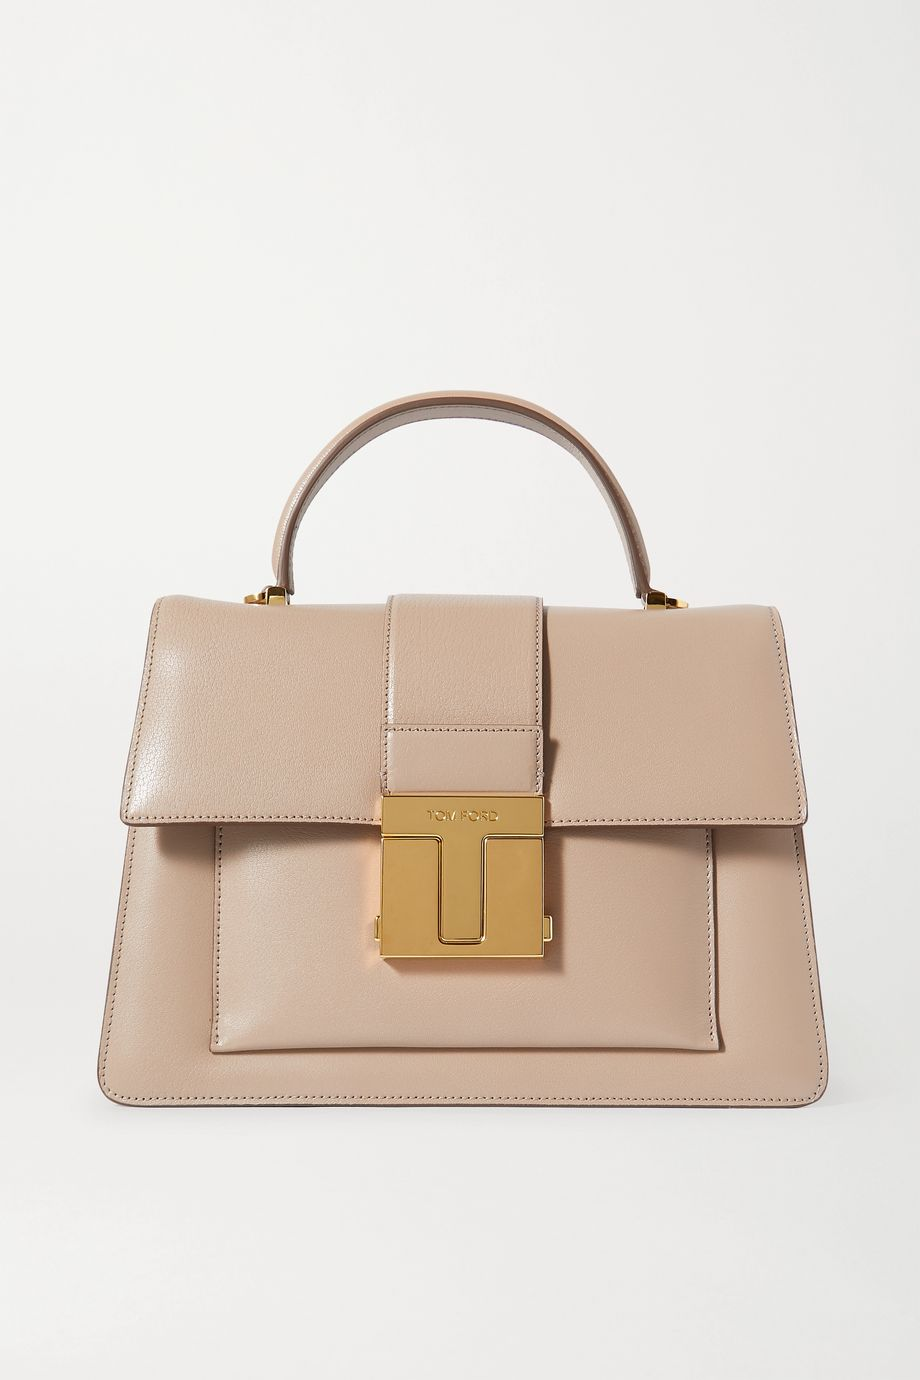 TOM FORD 001 medium leather tote